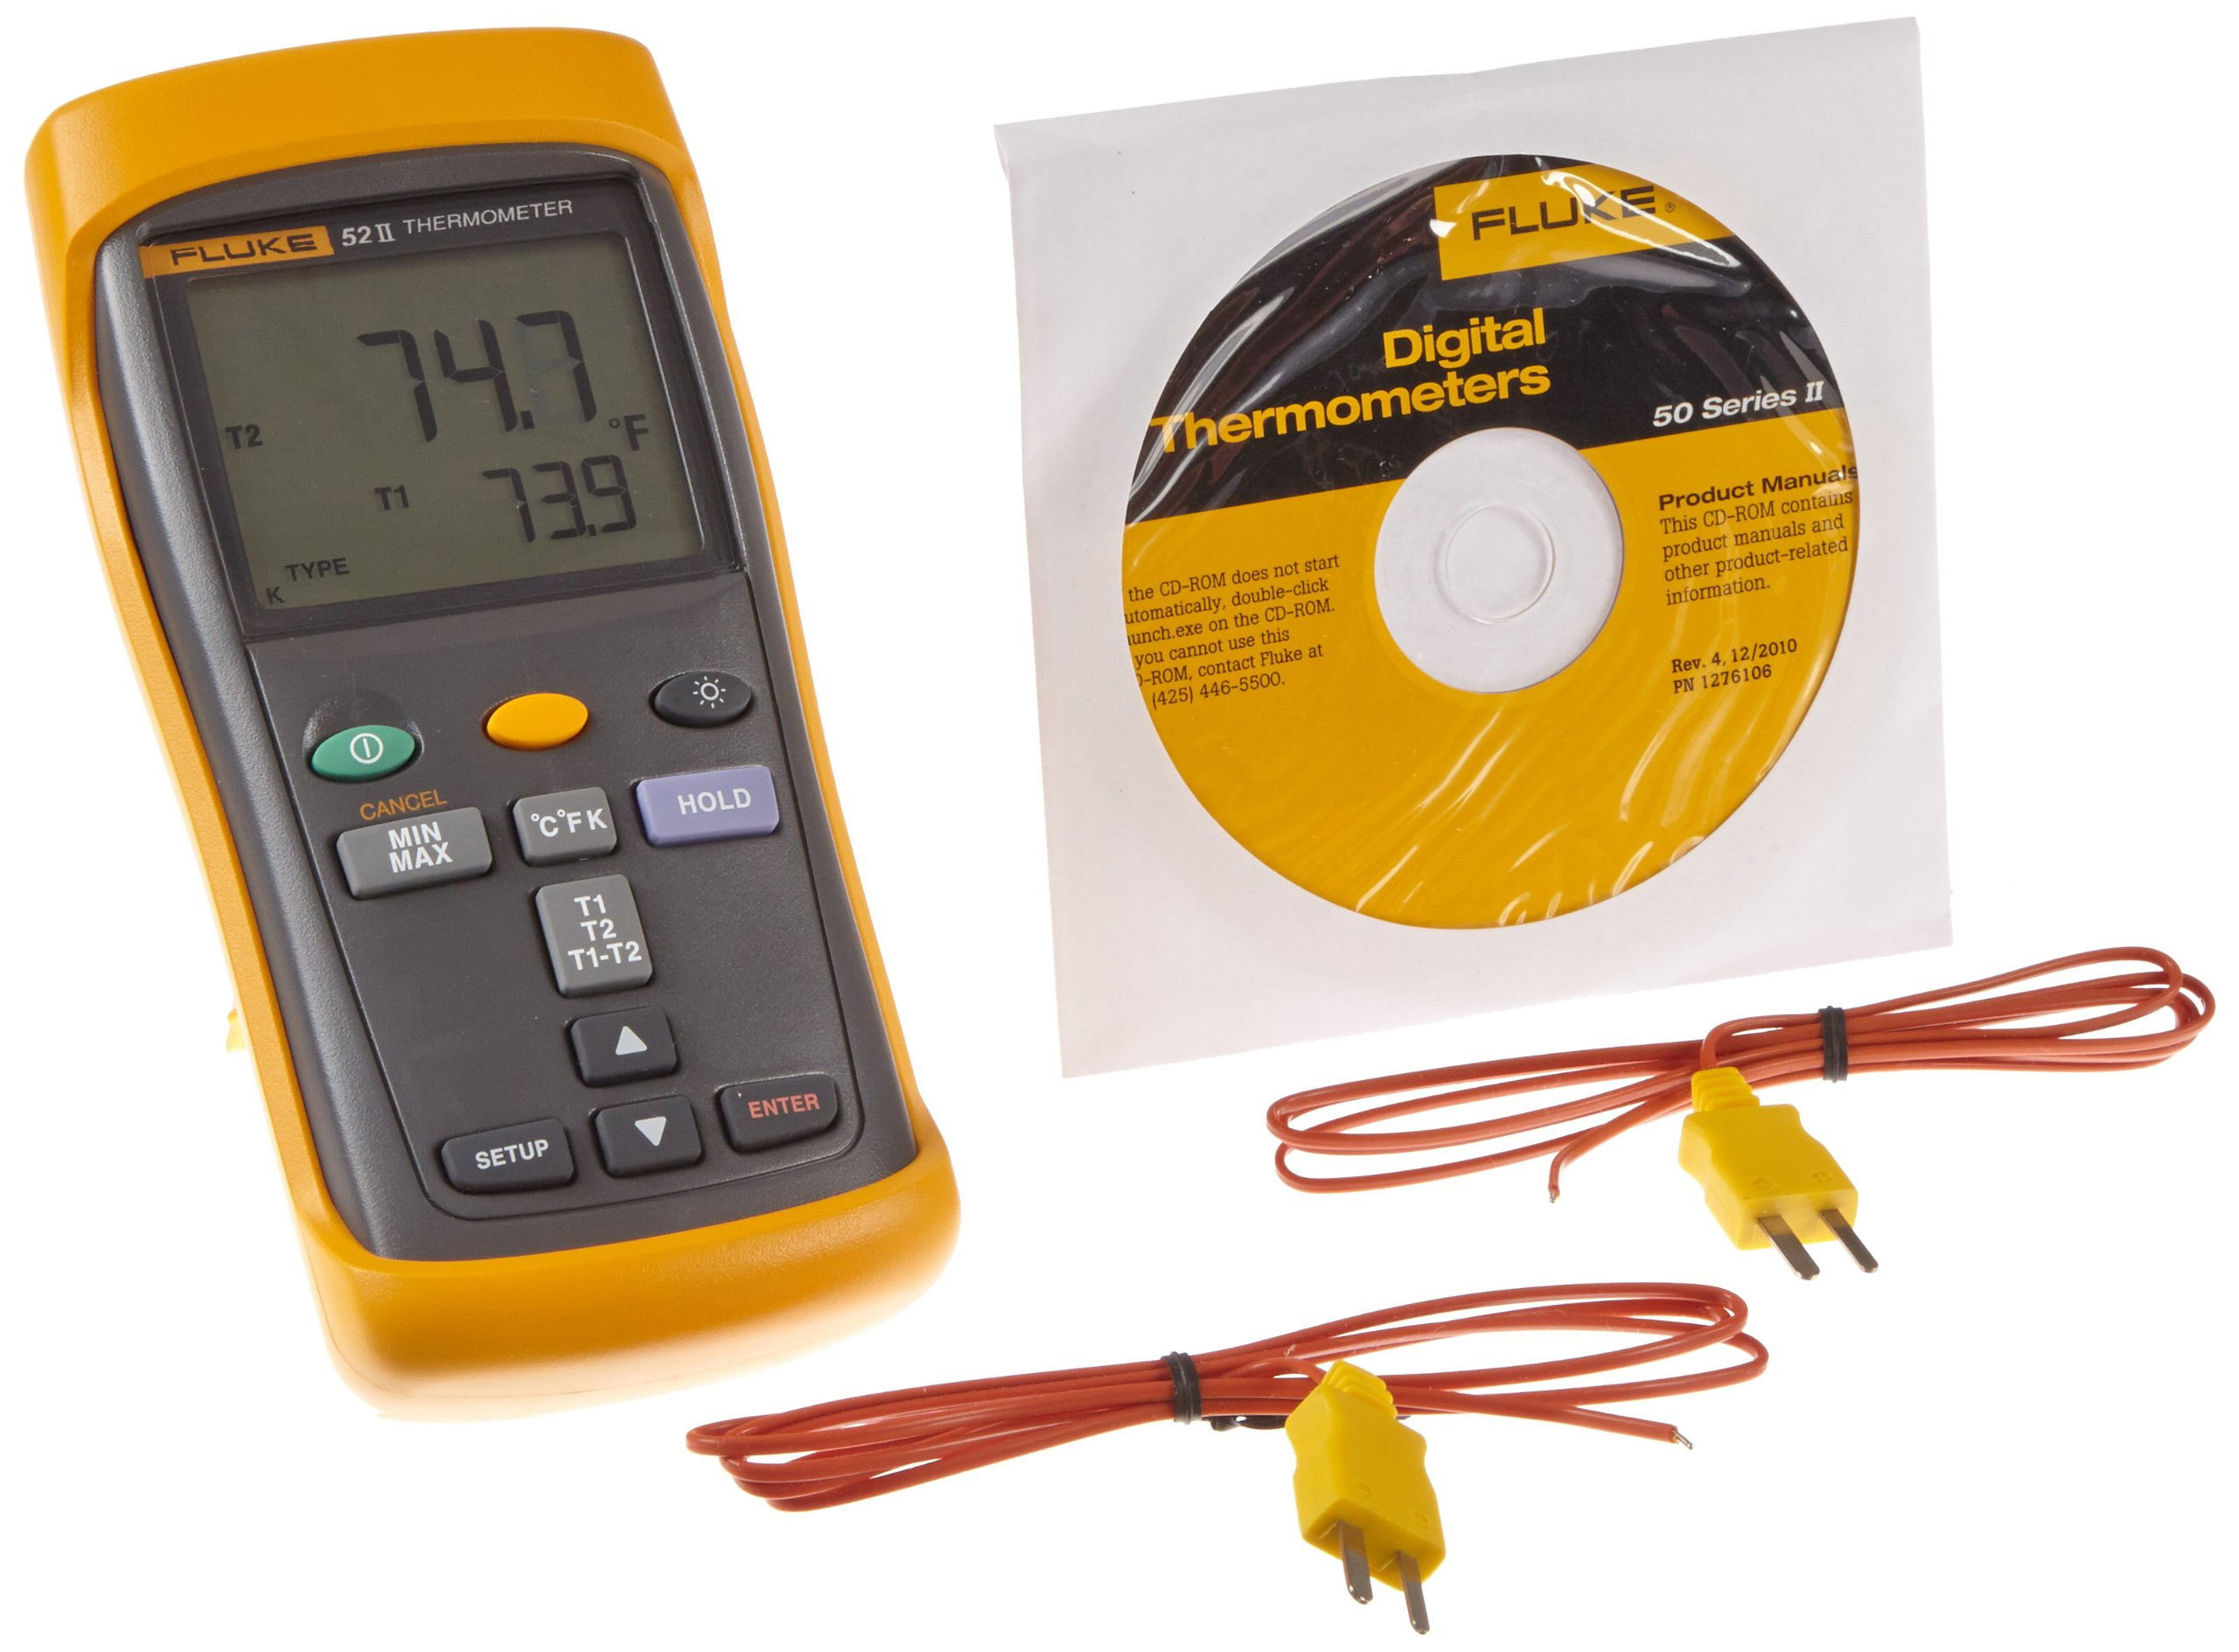 Fluke 52-2 Dual Input Digital Thermometer, 3 AA Battery, -418 to 2501 Degree F Range, 60 Hz Noise Rejection by Fluke